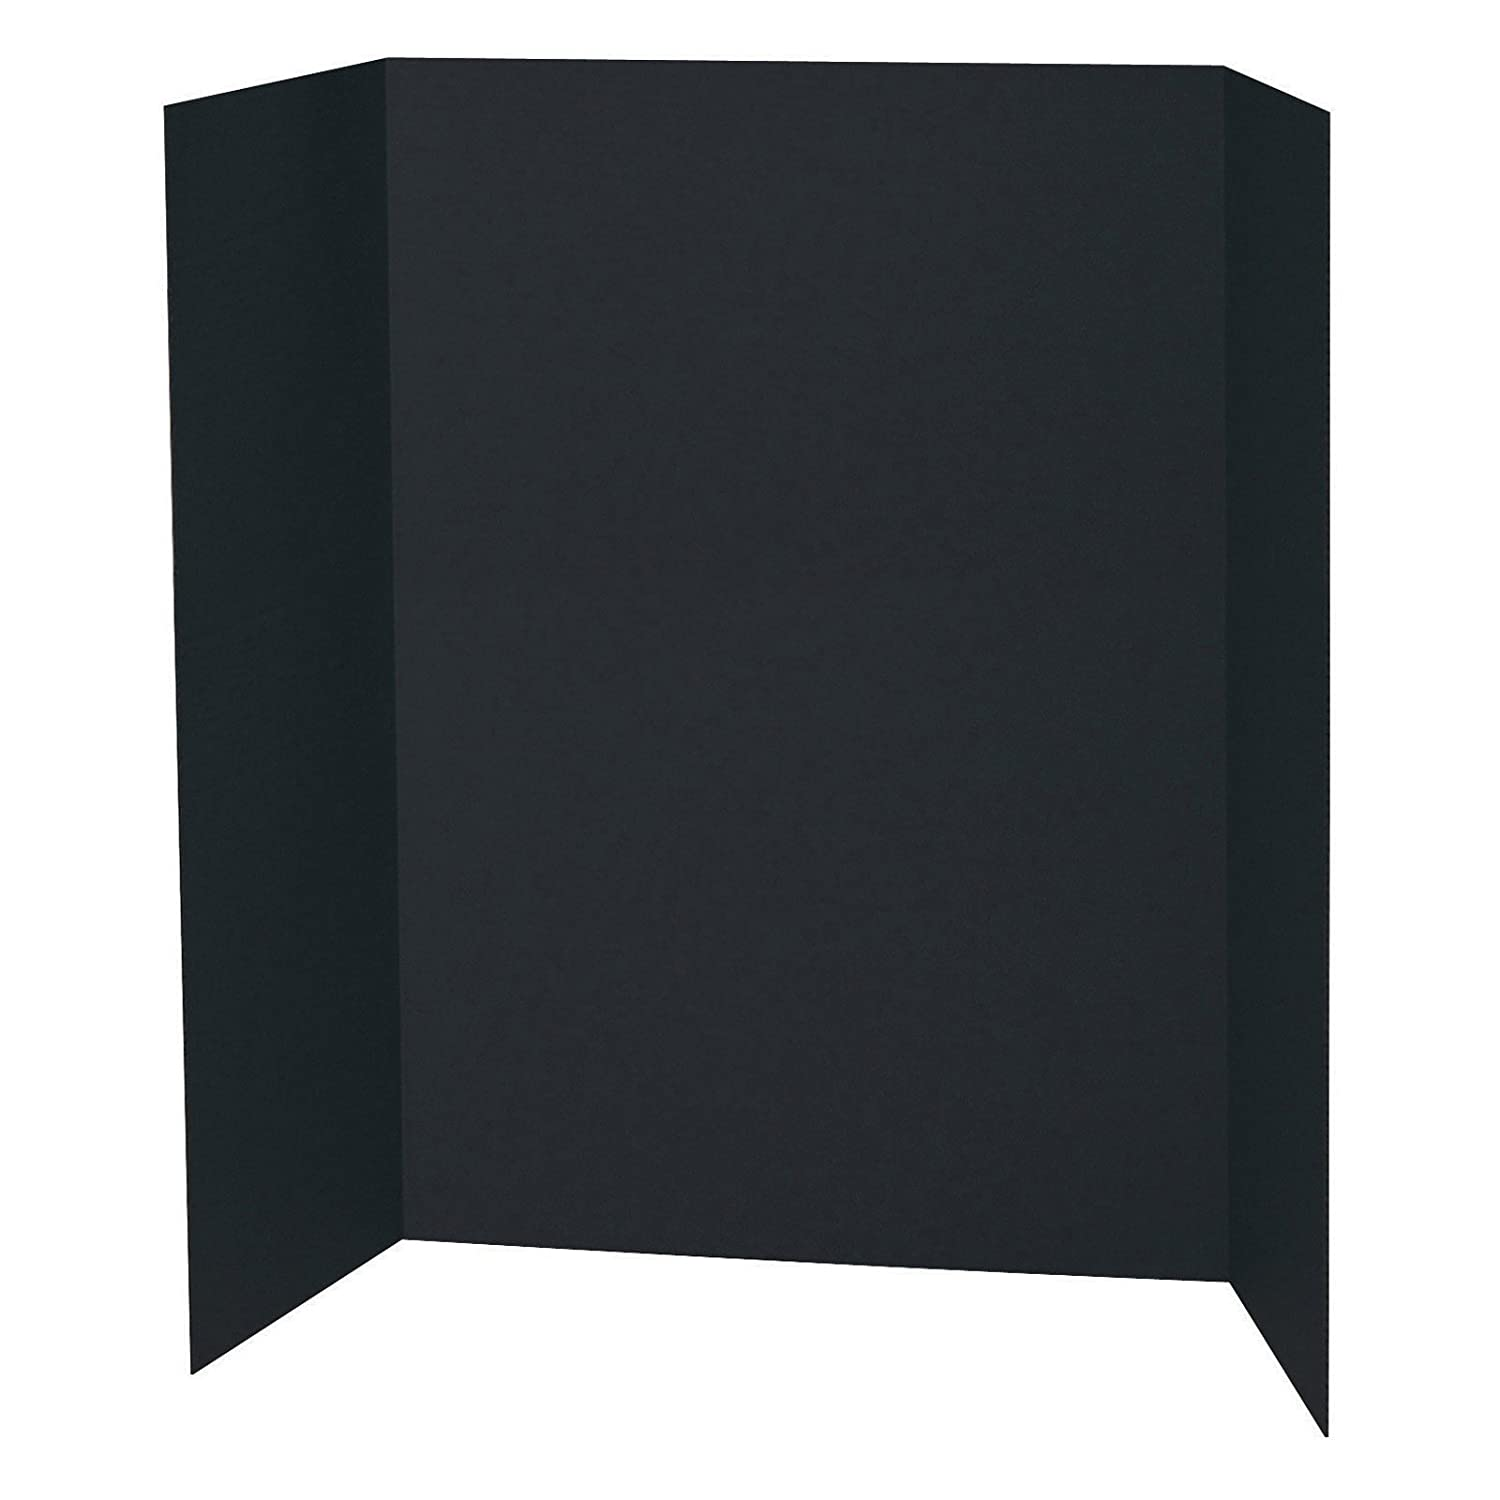 Pacon PAC3766BN Presentation Board, Black, Single Wall, 48 x 36, Pack of 6 48 x 36 PACON CORPORATION